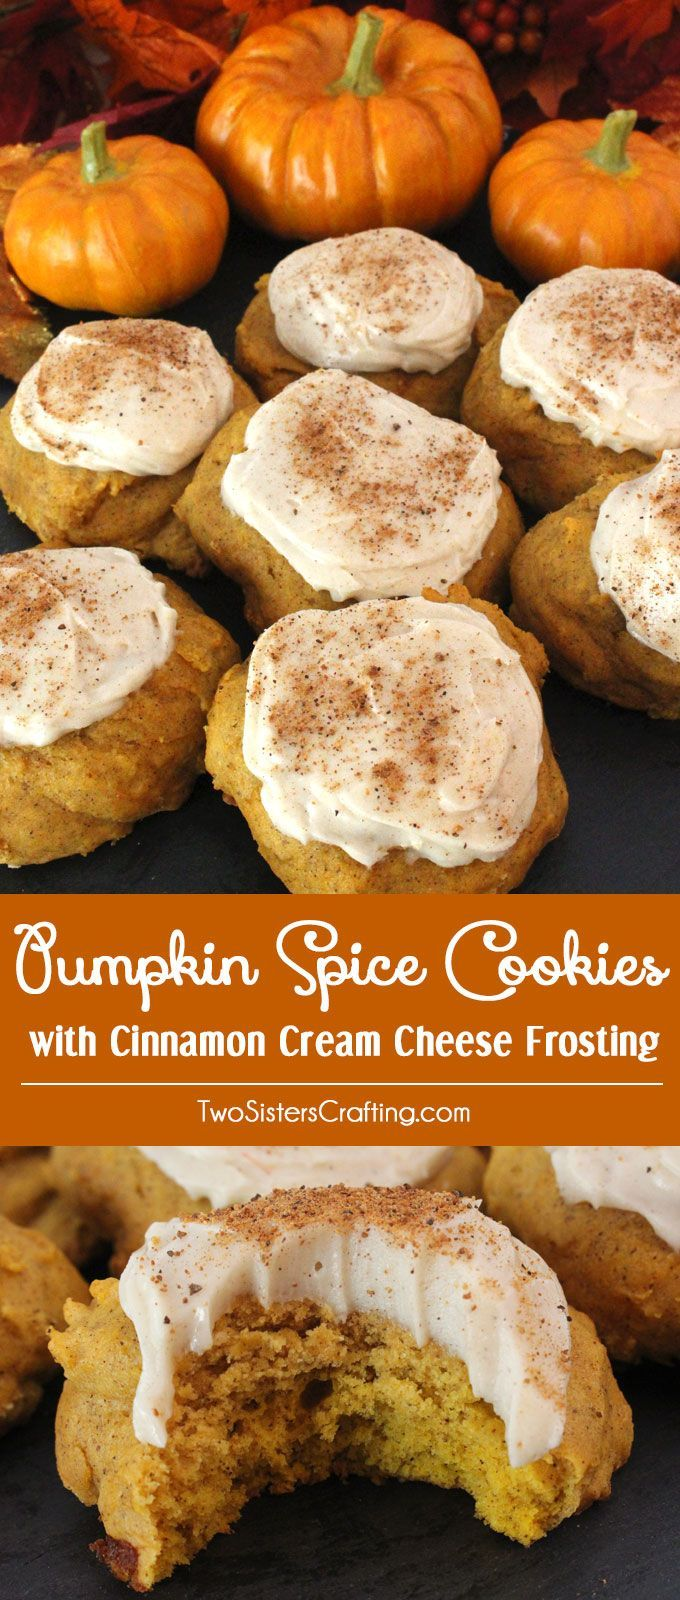 Our Pumpkin Spice Cookies with Cinnamon Cream Cheese Frosting are an old family recipe that only gets better with age - they taste just like…